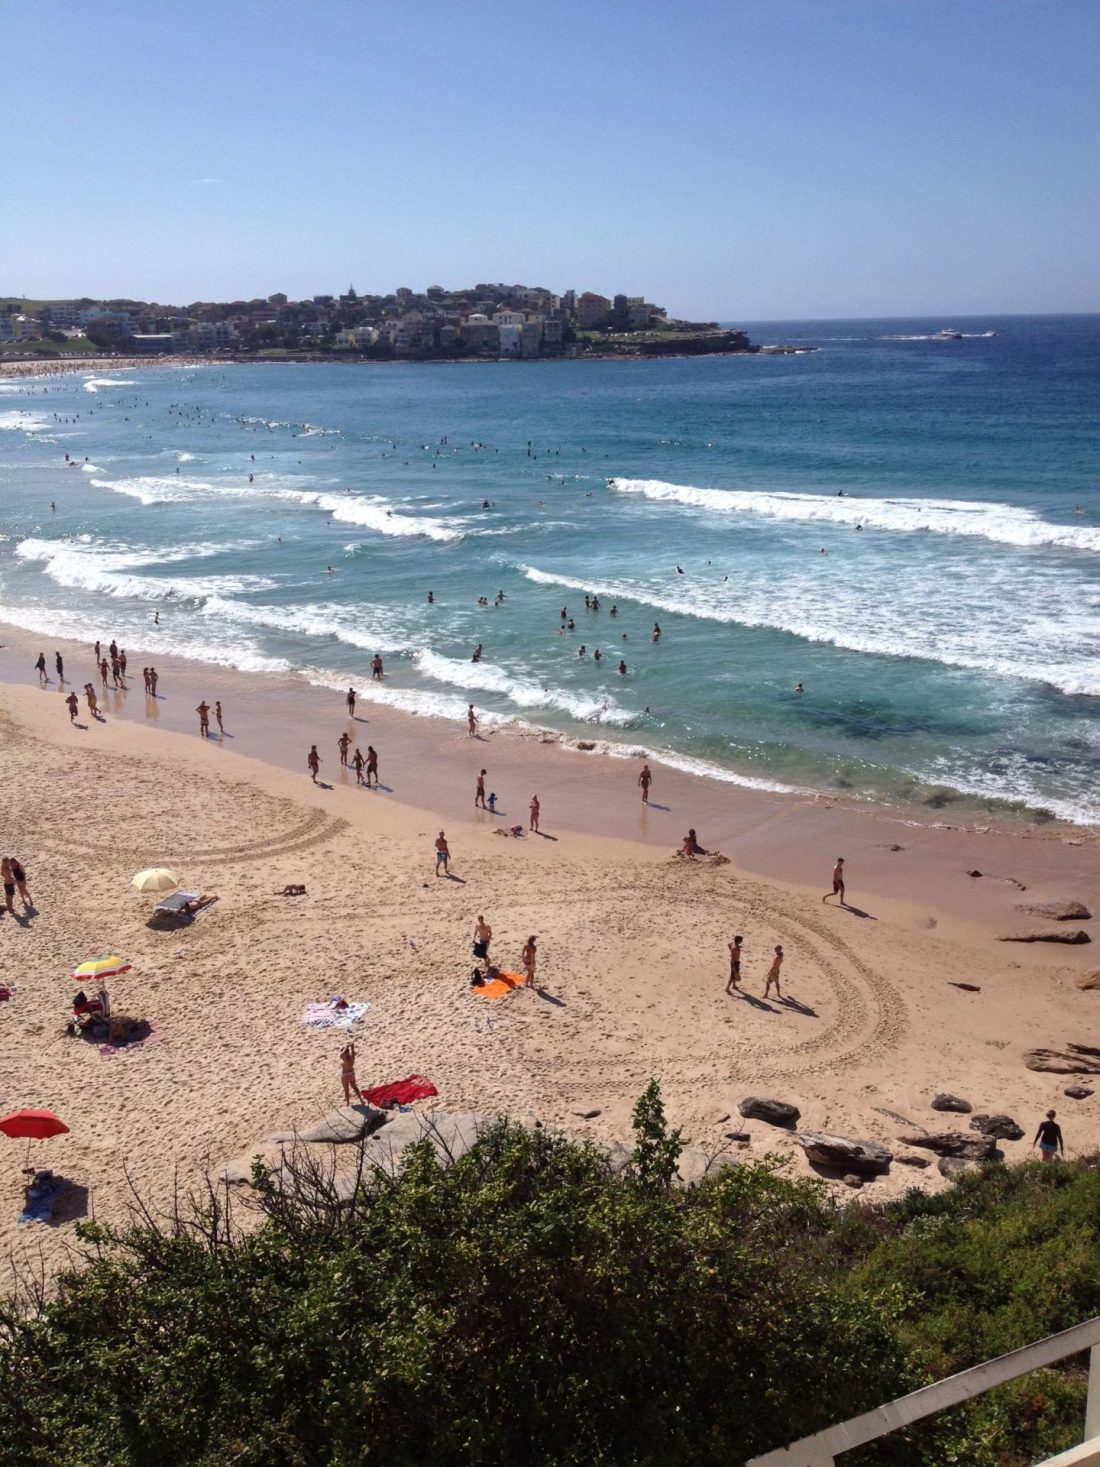 Bondi Beach, the beginning of the Bondi to Coogee Walk, Sydney